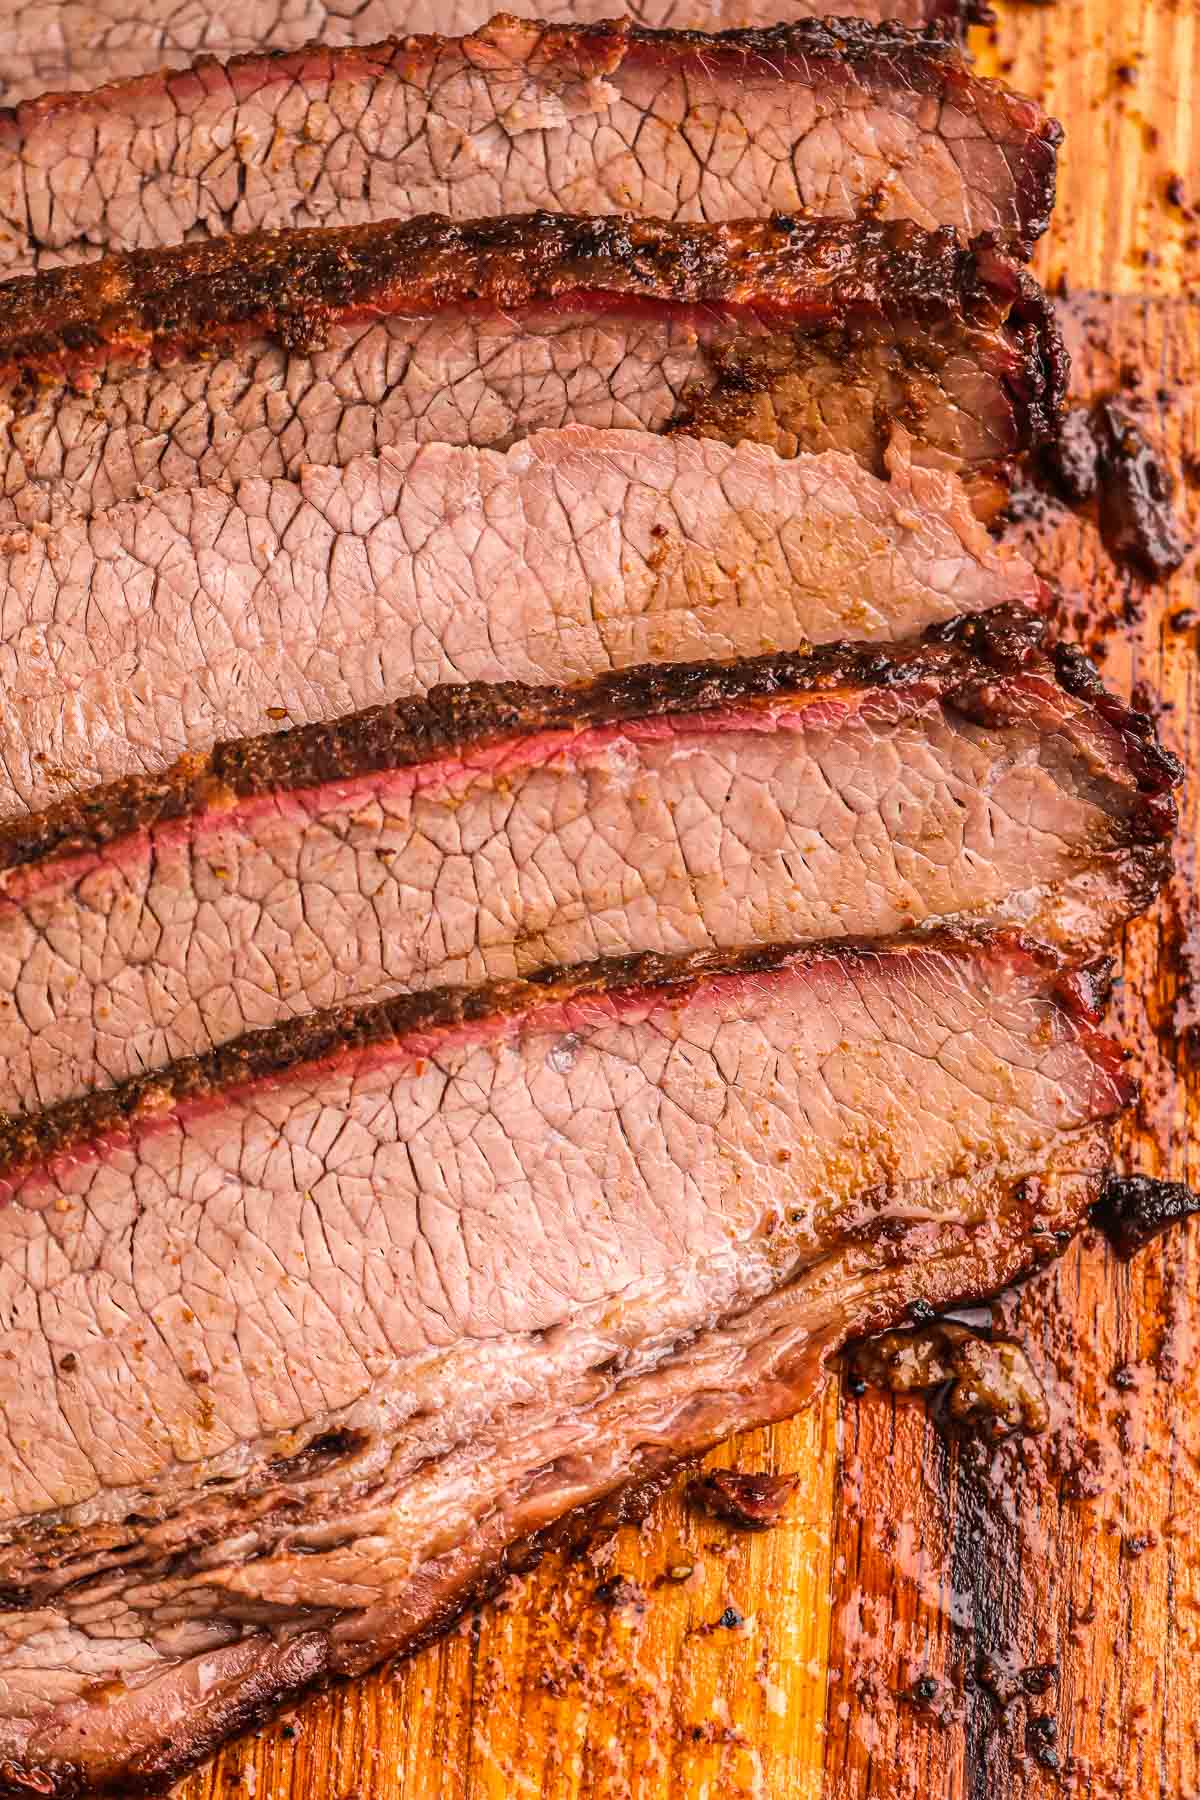 5 slices of juicy smoked brisket on a wooden cutting board.